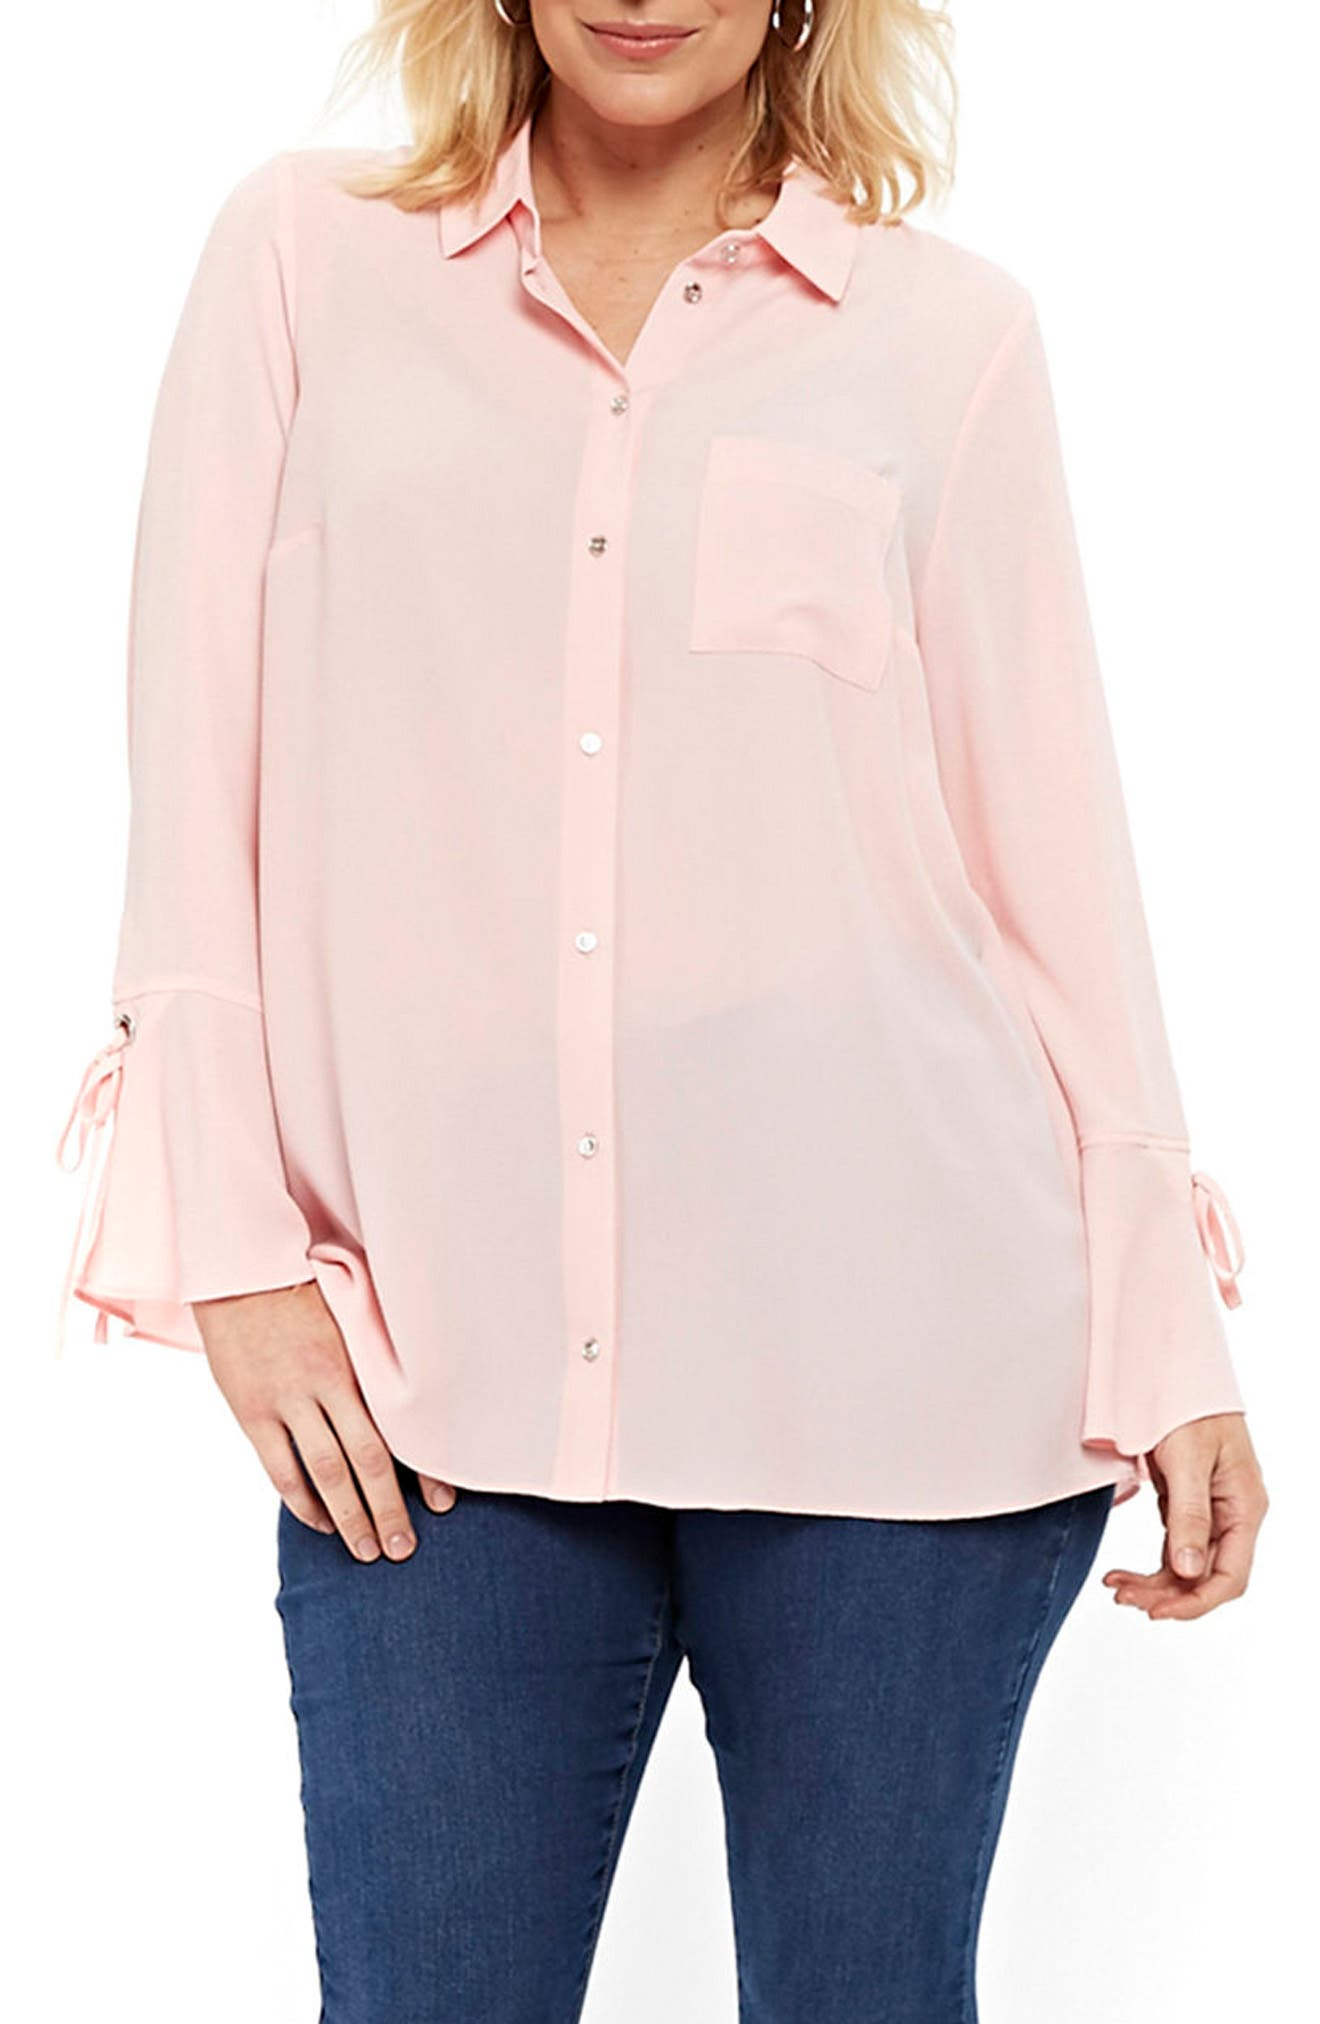 Lace-Up Cuff Shirt,                             Main thumbnail 1, color,                             Pale Pink